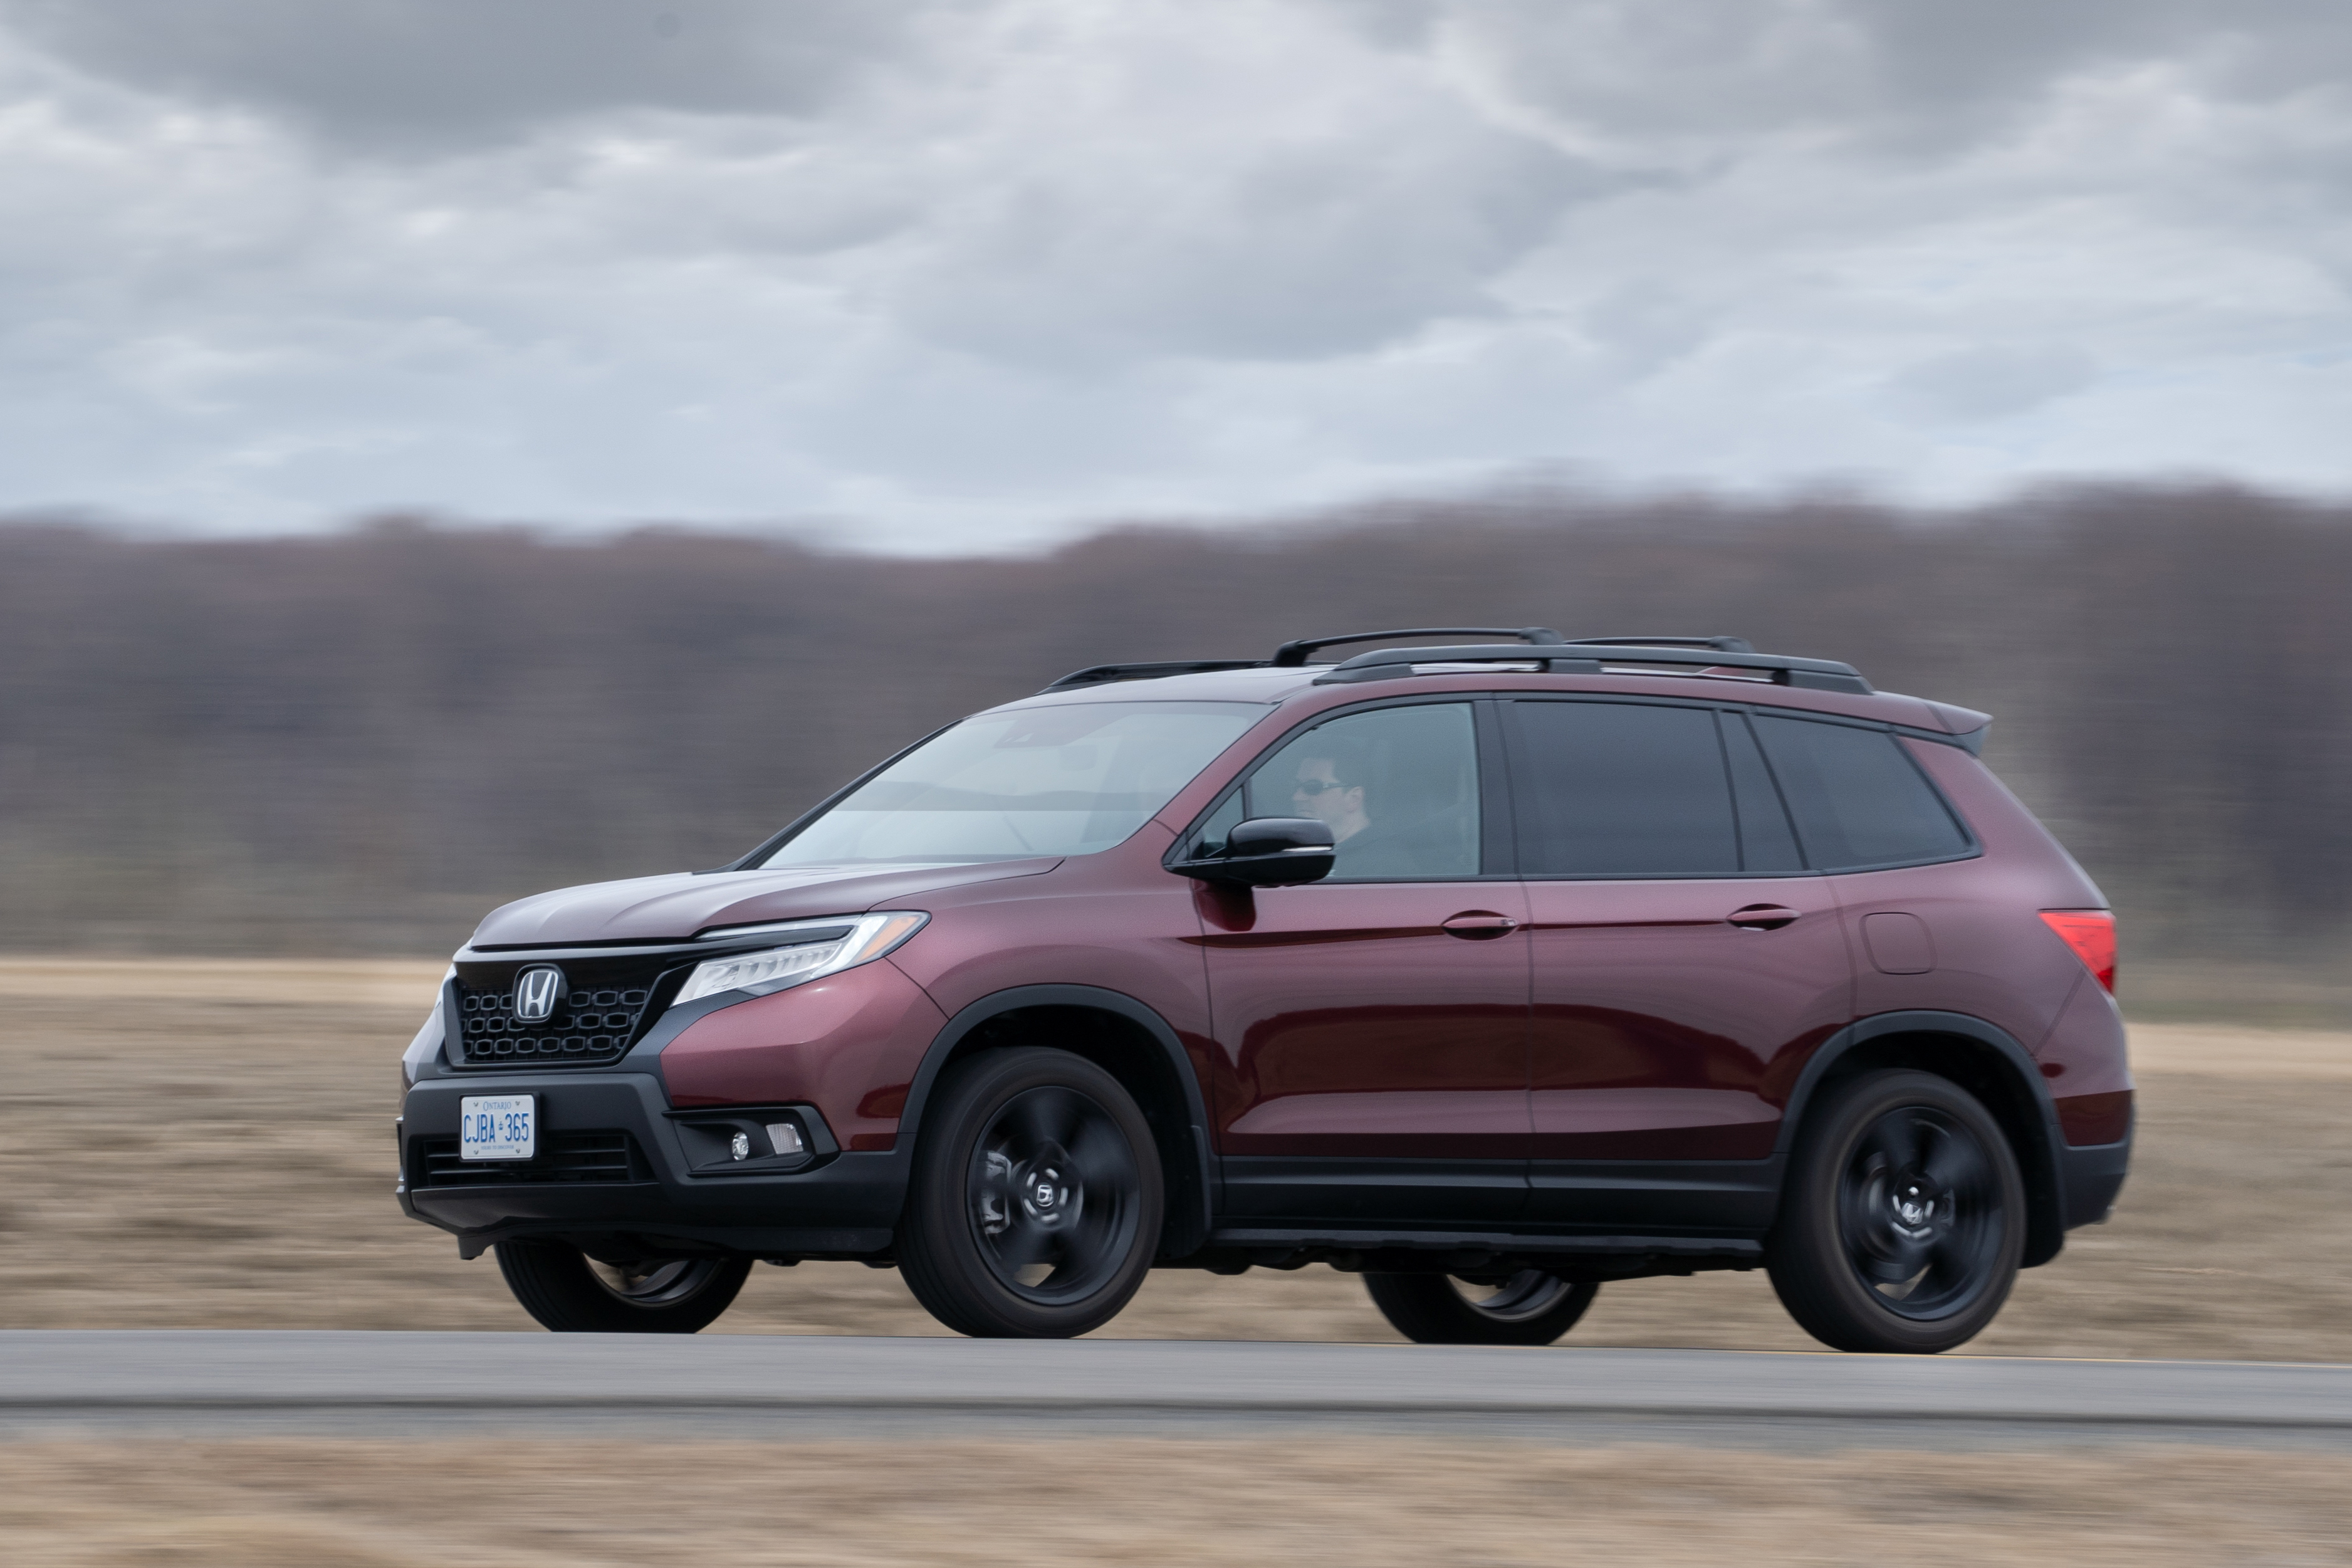 2019 Honda Passport Is Based On The Best Possible Recipe